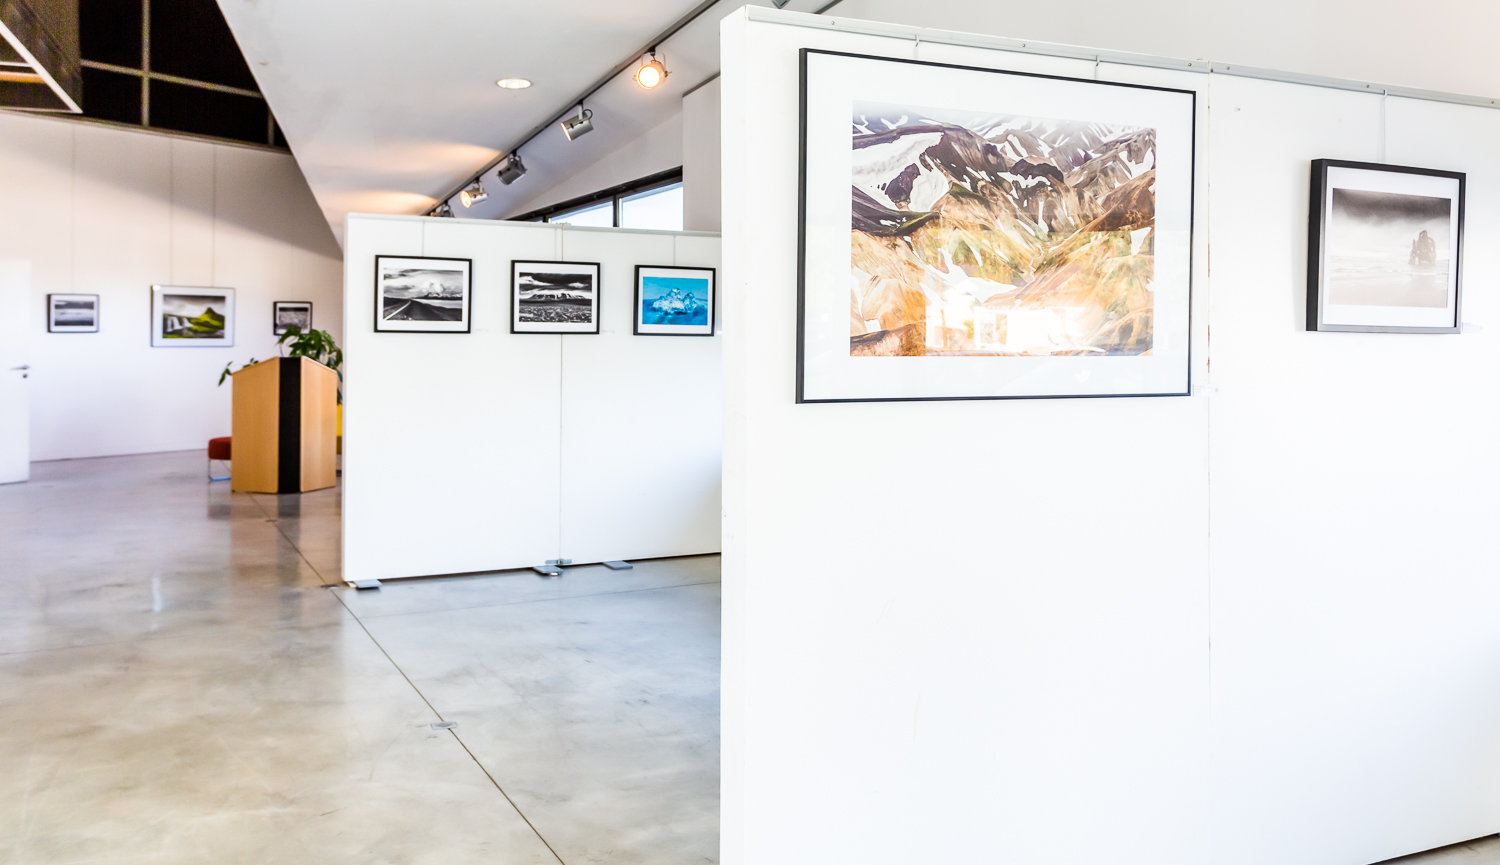 Exposition photo sur l'Islande à Ploeren